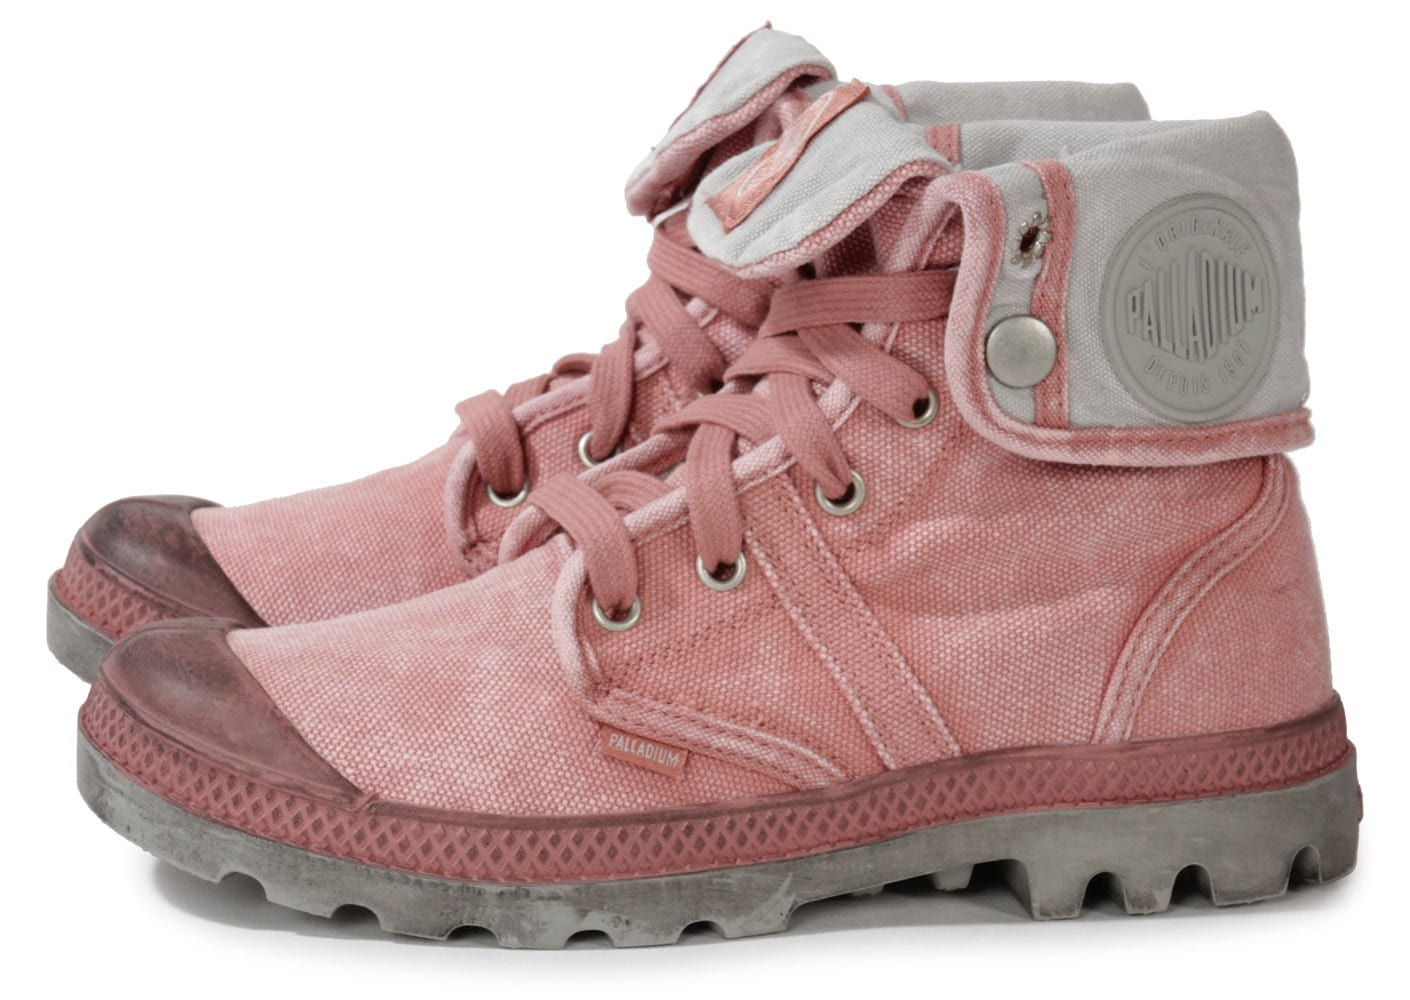 Baggy Chaussures Femme Old Rose Chausport Palladium Baskets Us nNvm80Ow